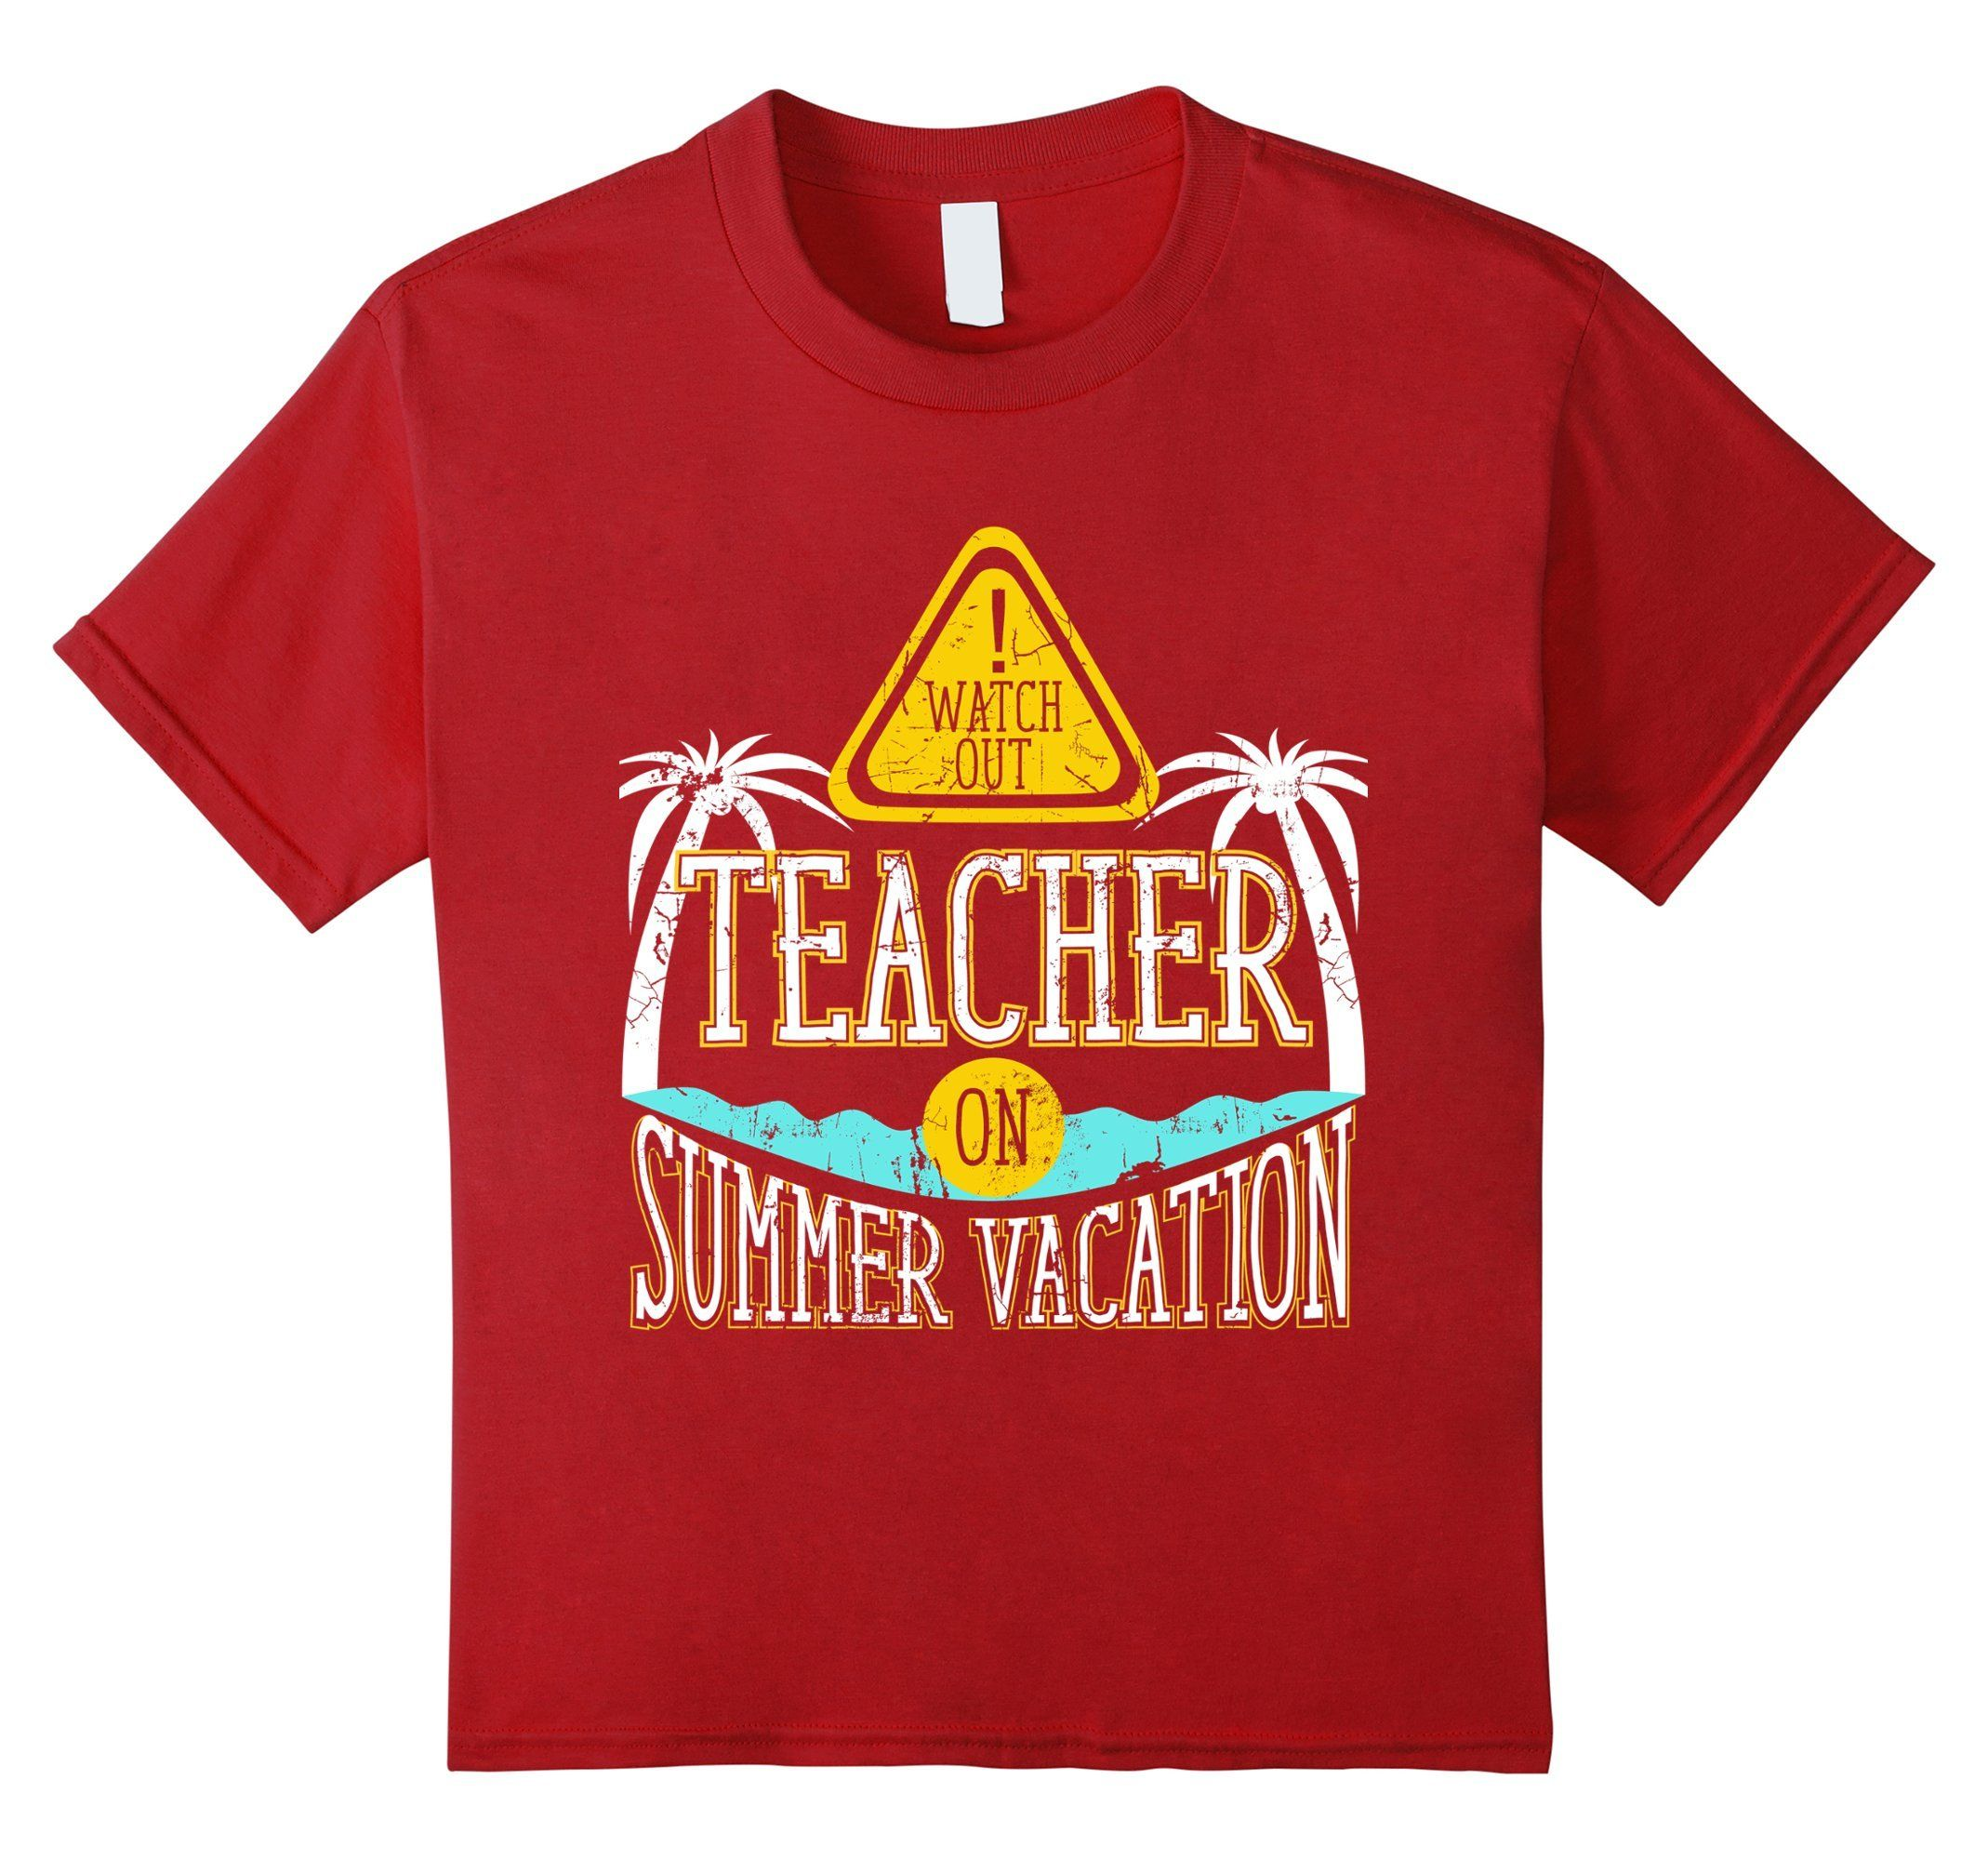 3727d602d46e Kids Watch Out Teacher on Summer Vacation Educator TShirt 12 Cranberry    Want to know more